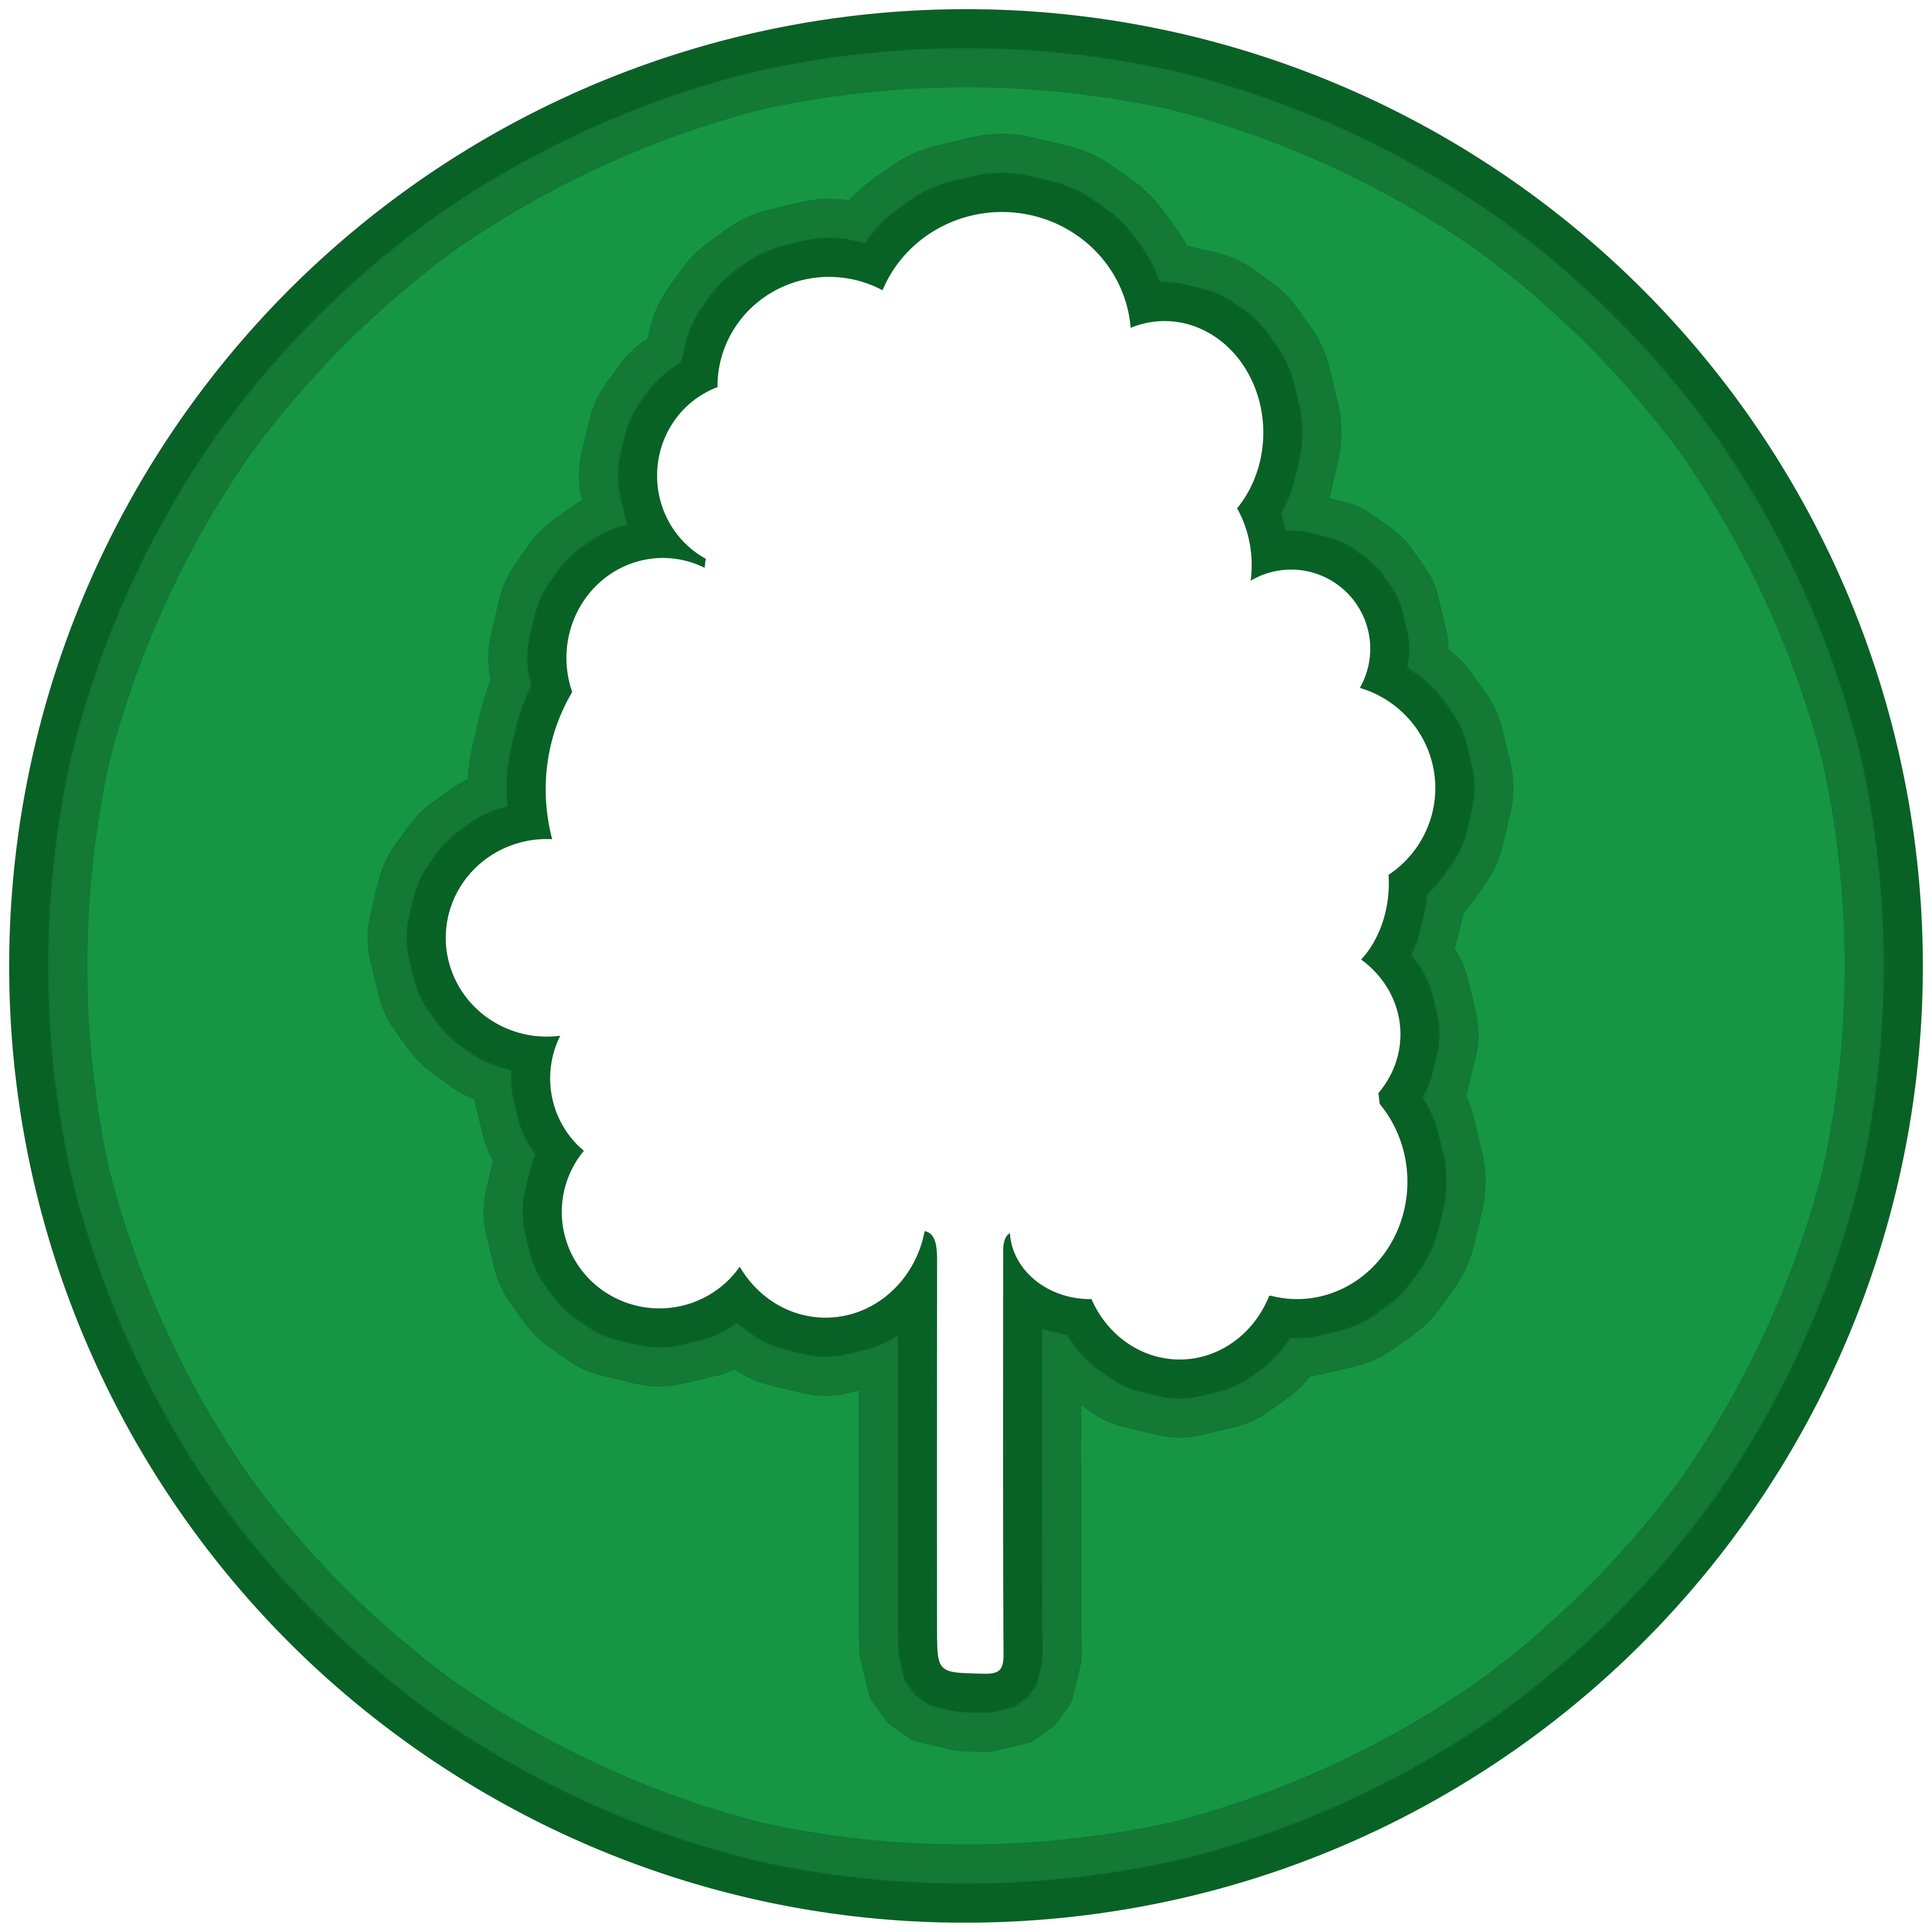 Clipart eco image transparent library Eco Green Tree PNG Clipart - Best WEB Clipart image transparent library